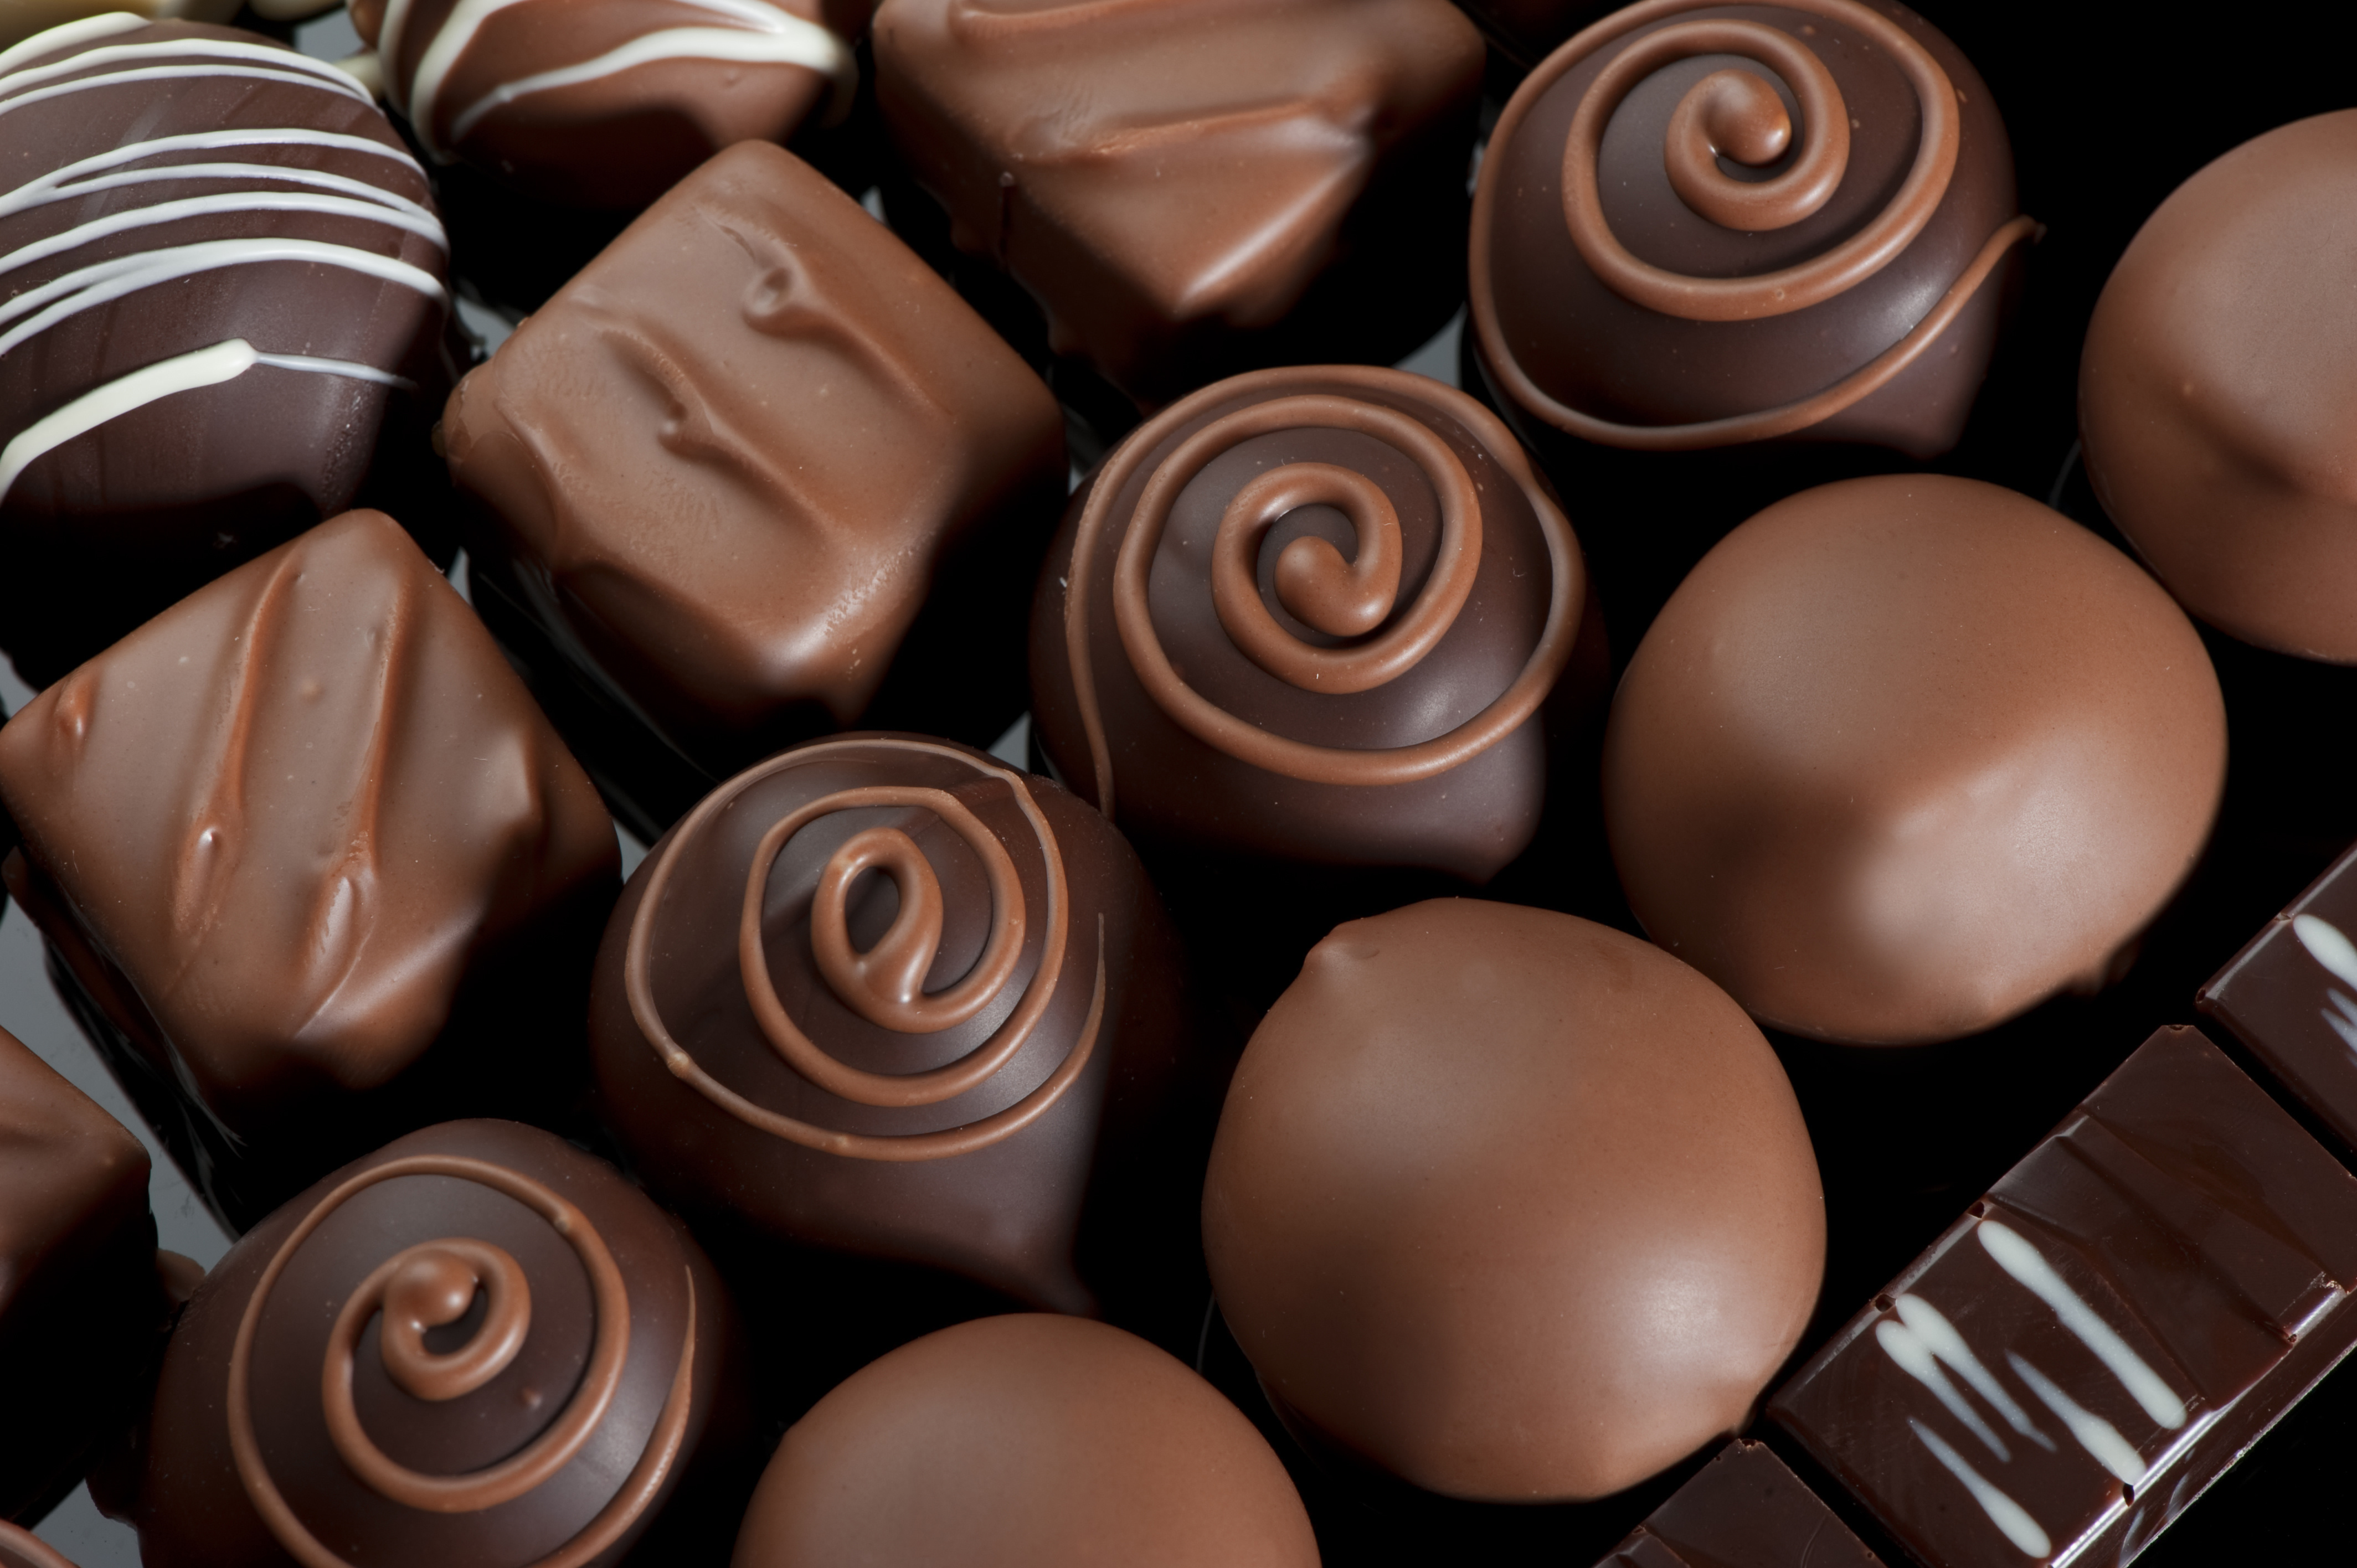 Chocolate Chocolate candy download photo wallpapers for desktop 4256x2832